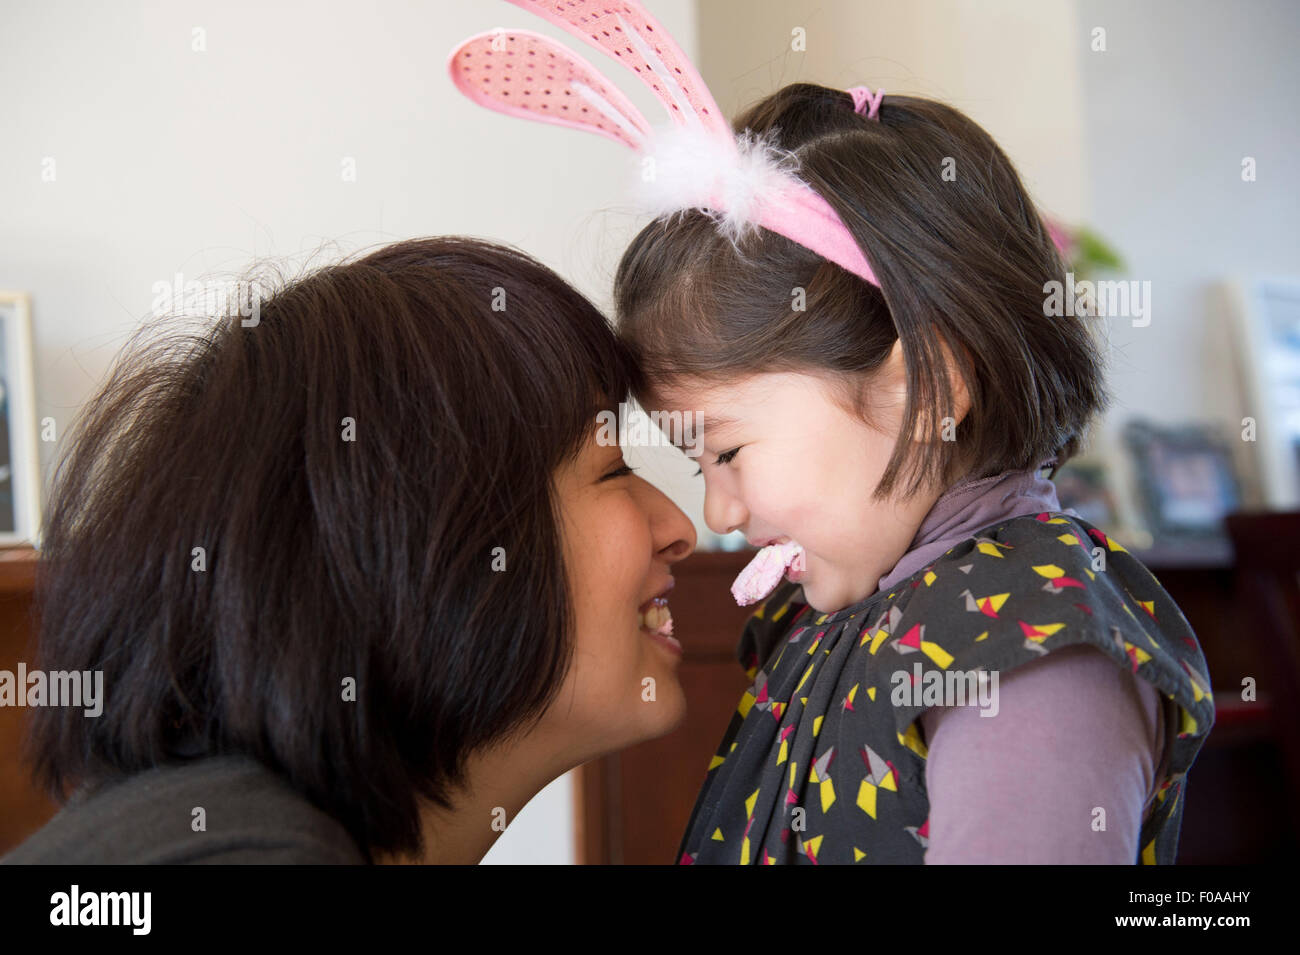 Mother and daughter, face to face, daughter wearing bunny ears and holding sweet in her mouth - Stock Image